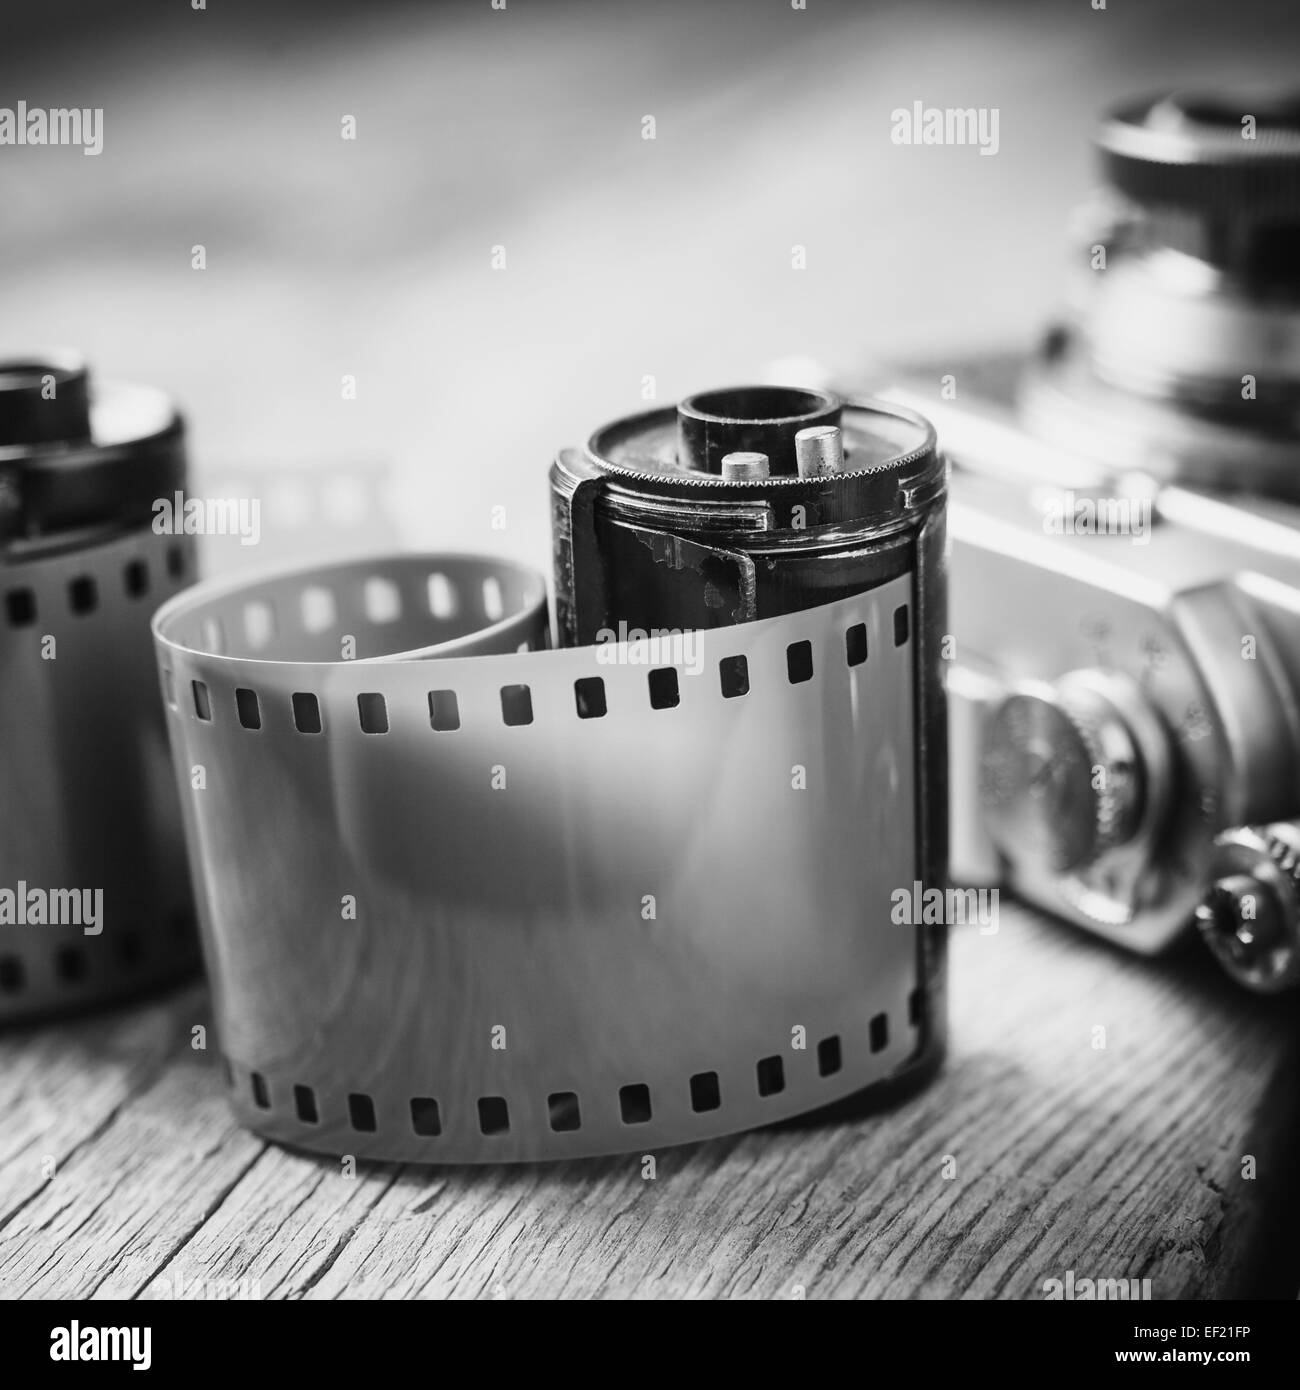 Old photo film cassette and retro camera on background. Vintage black and white stylized. - Stock Image